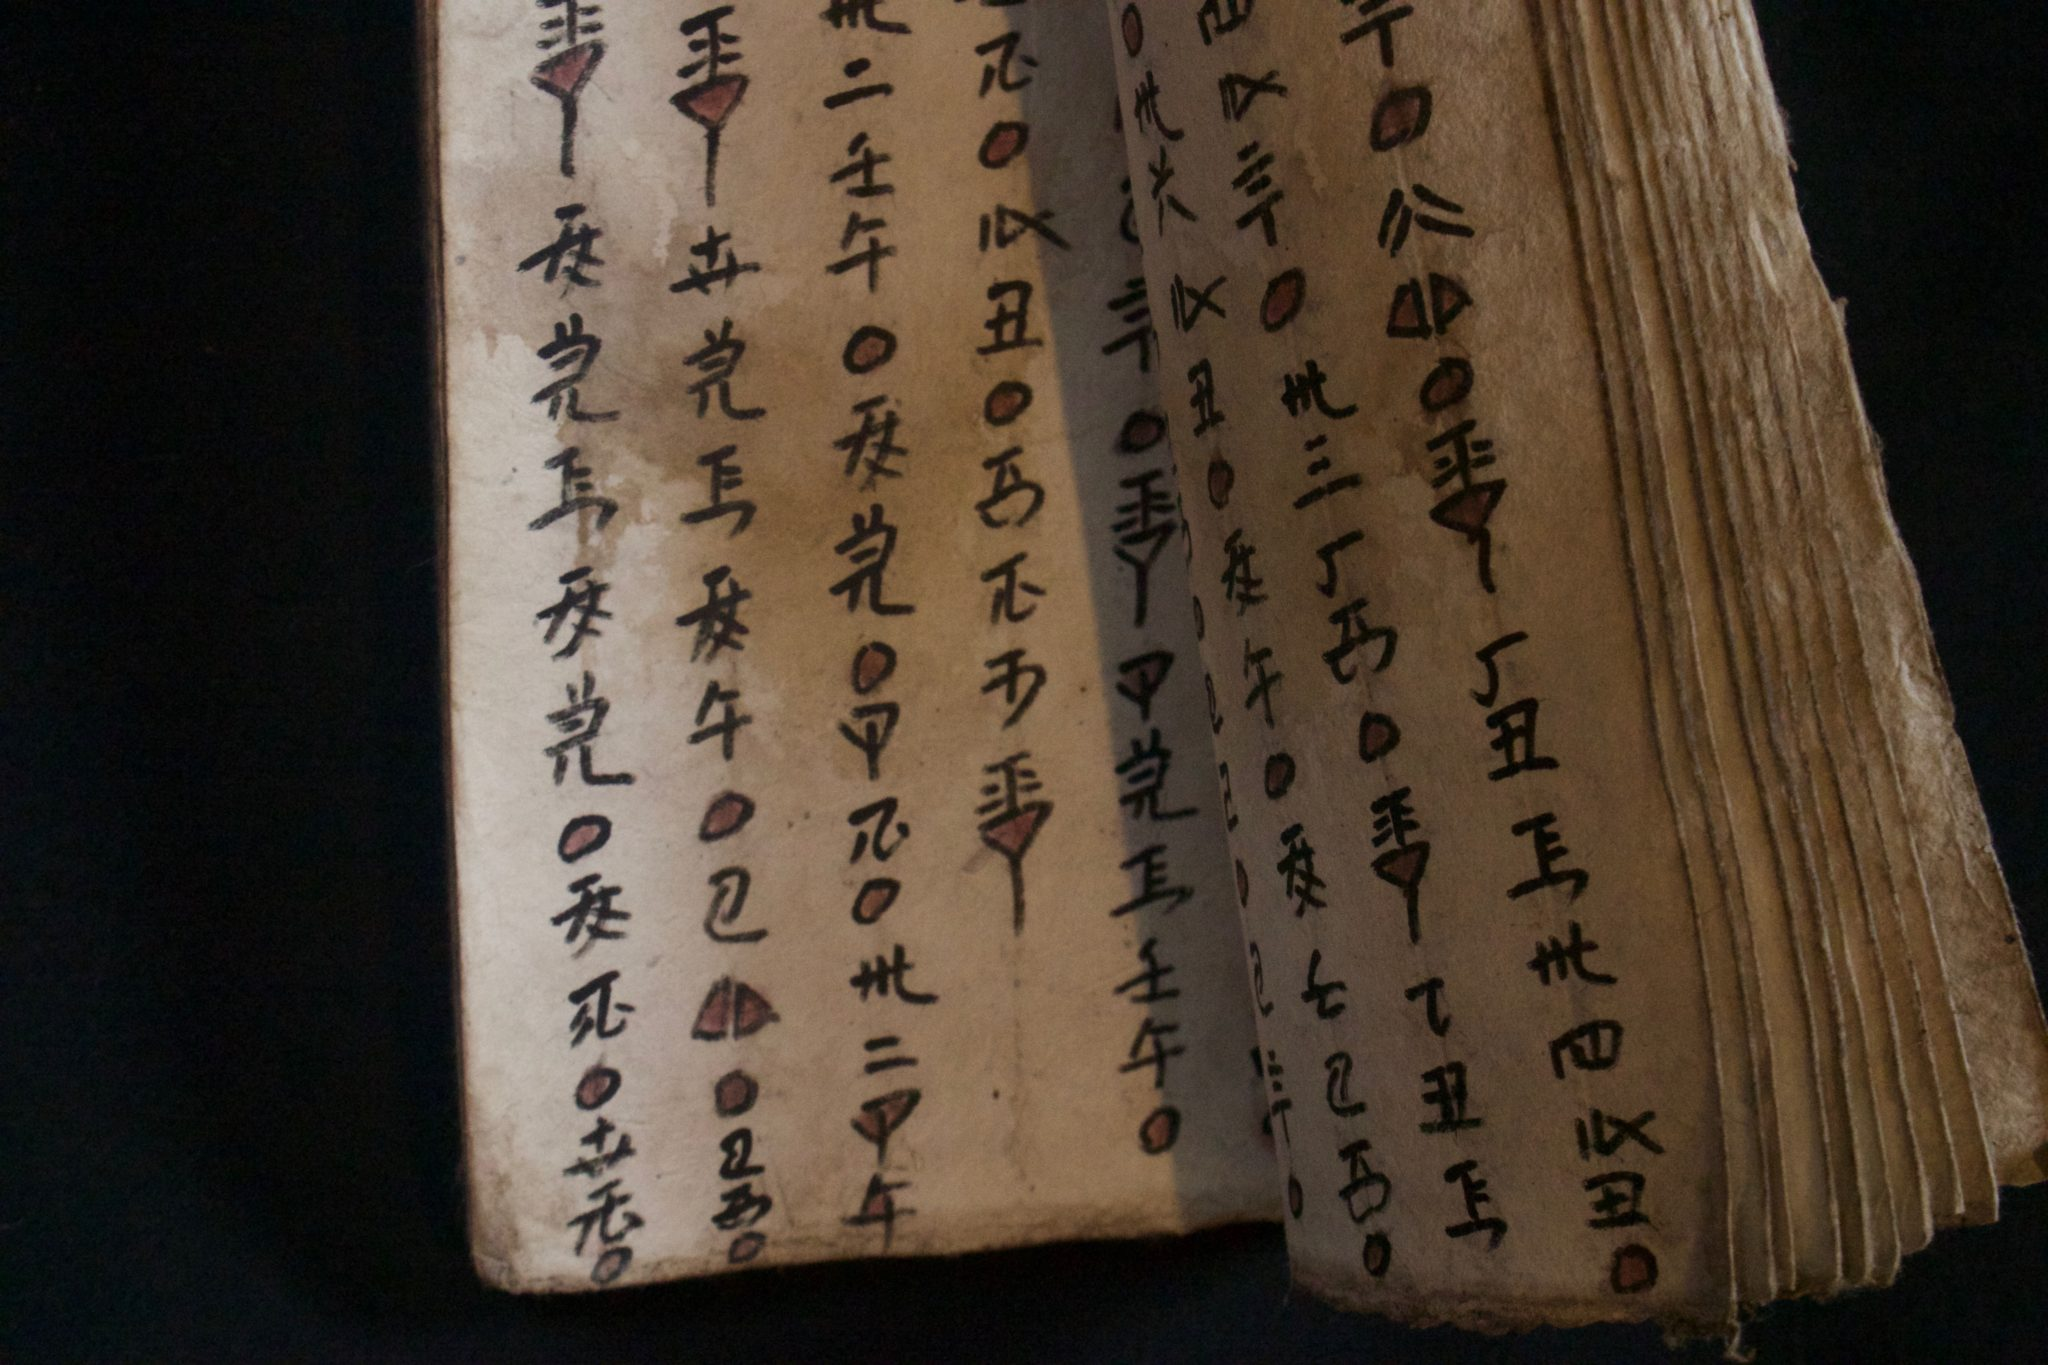 "Inside detail of Shaman's Personal Instructional Book, China, Yunnan Shui people, Early 20th c, Paper, ink, pigment, Scripted by the shaman, on handmade paper, to record all his knowledge and to instruct future shaman, 9"" x 6 ¼"" 1"", $750"